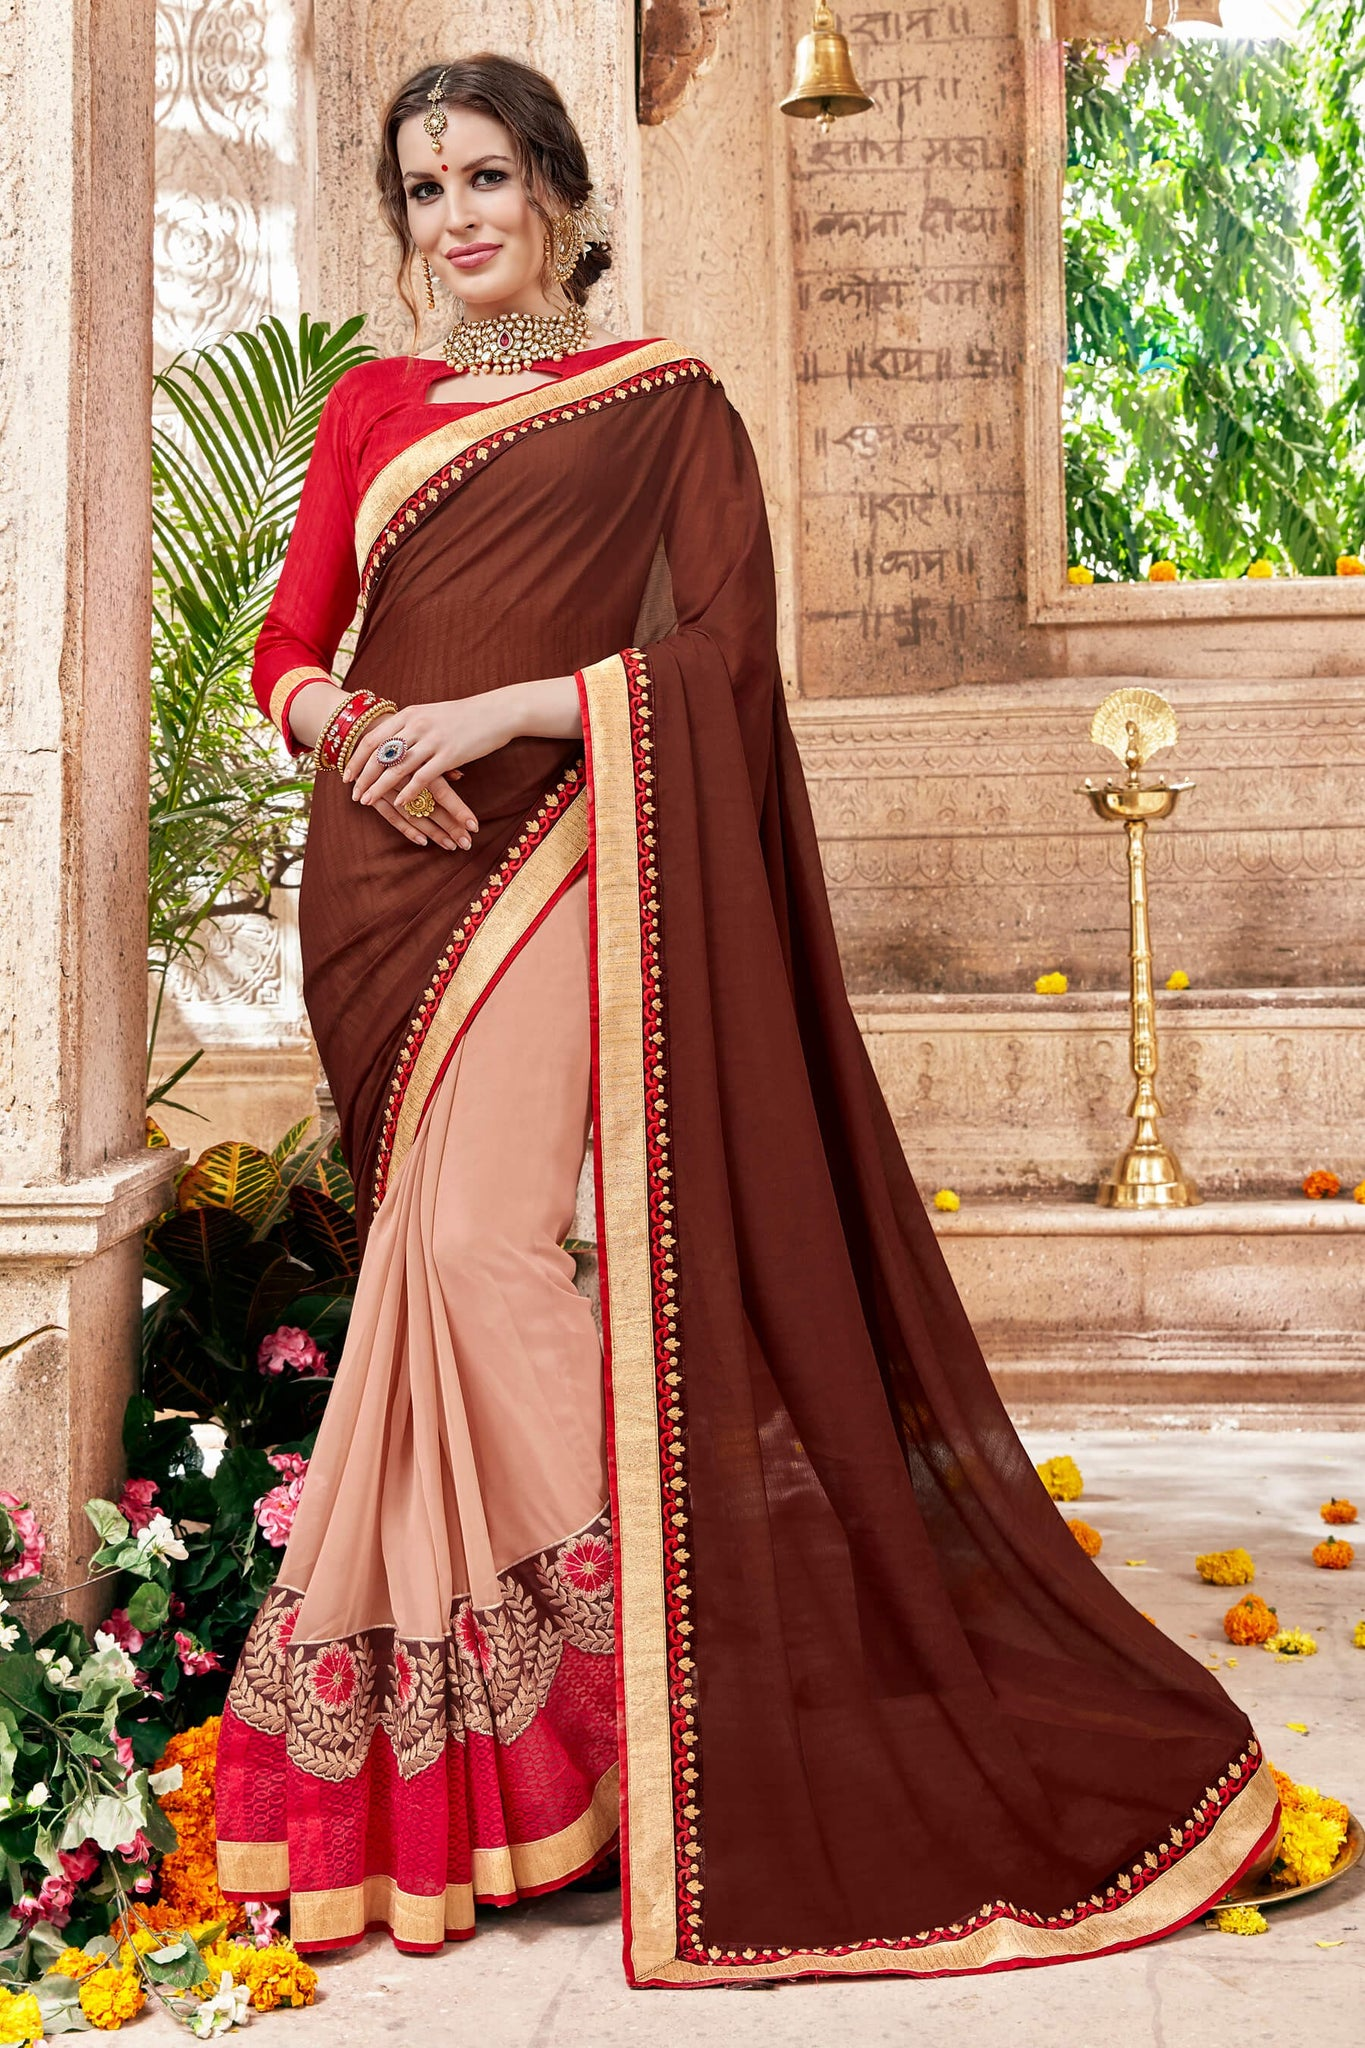 Marvelous Classic syle sarees in Georgette fabric party sarees Brown & Peach color good Embroidery , Lace Saree FZ 708